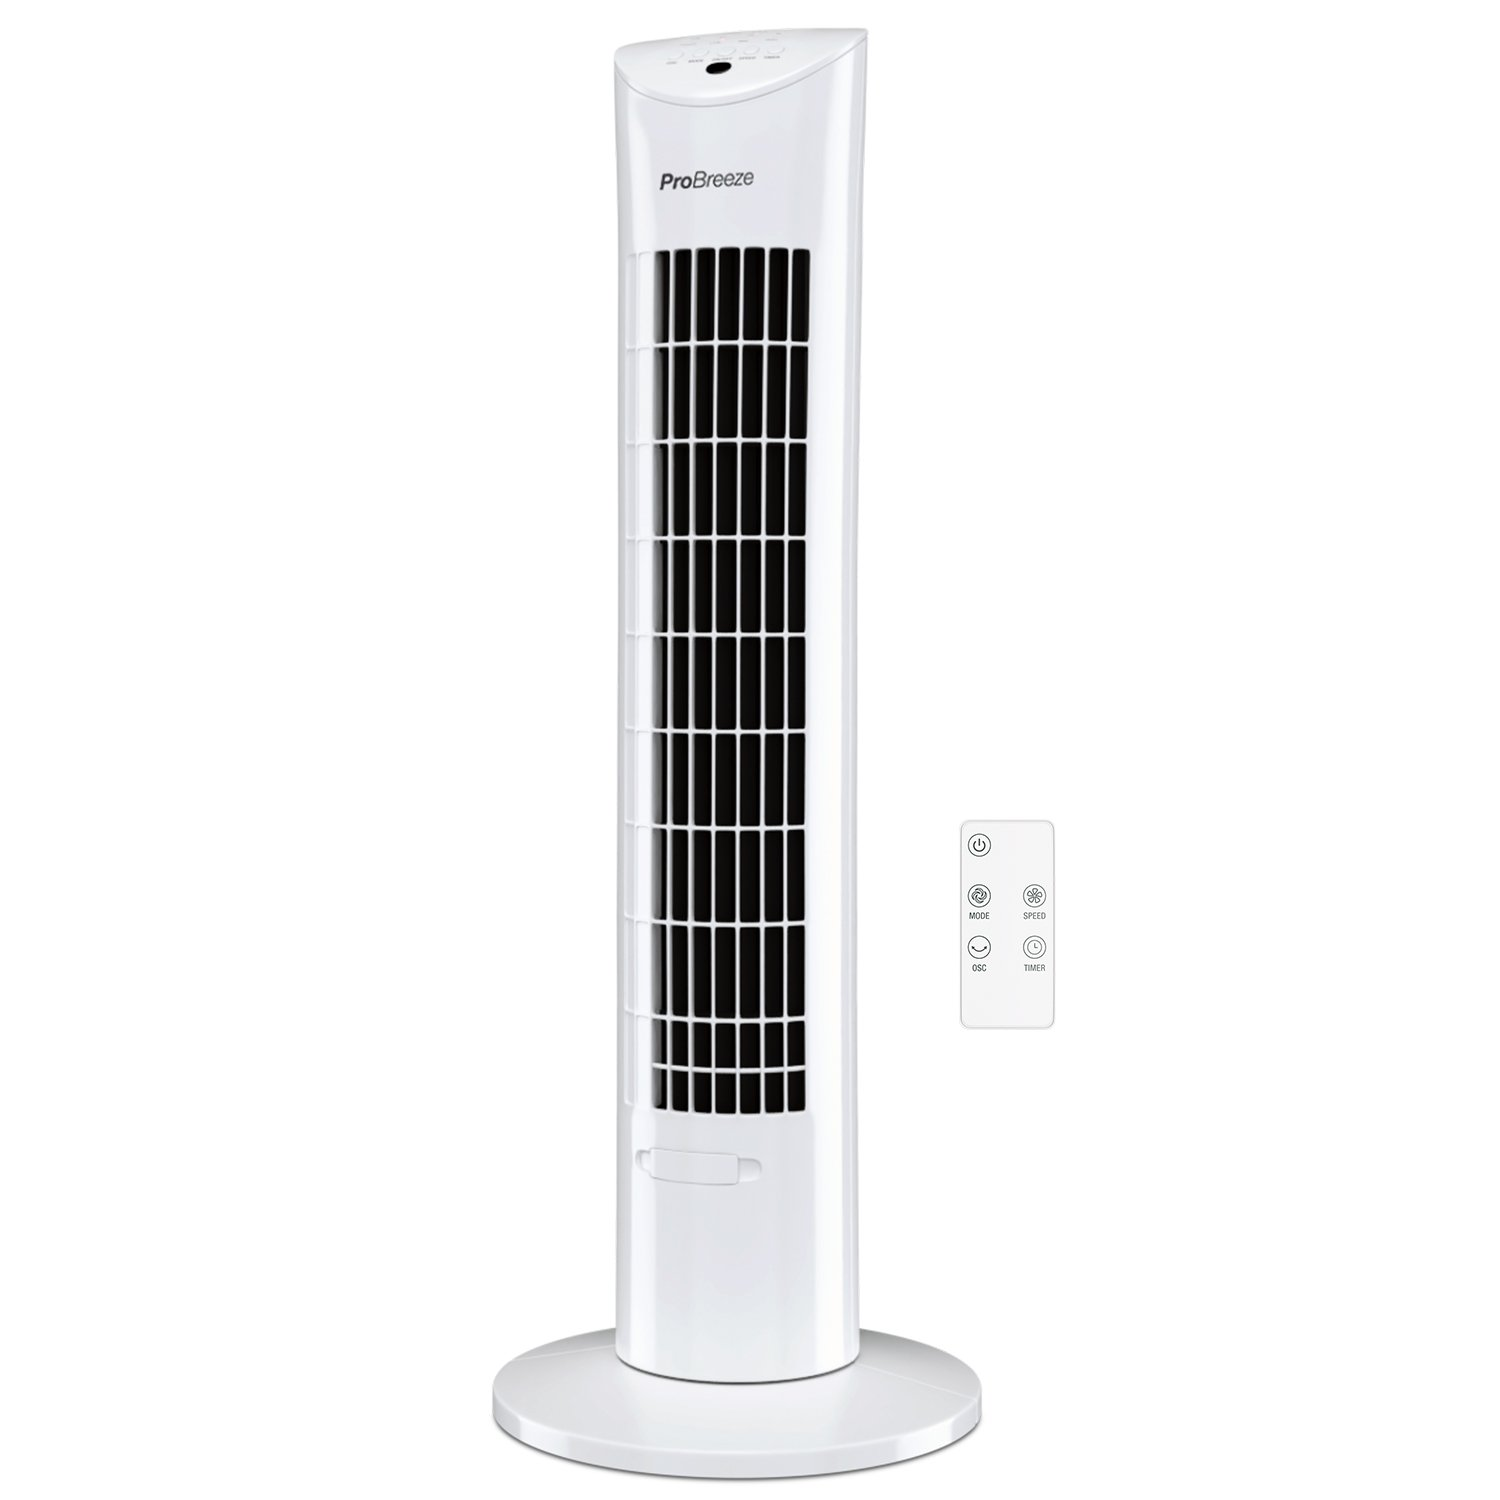 Pro Breeze Oscillating 30-inch Tower Fan with Remote Control and Timer for Home and Office